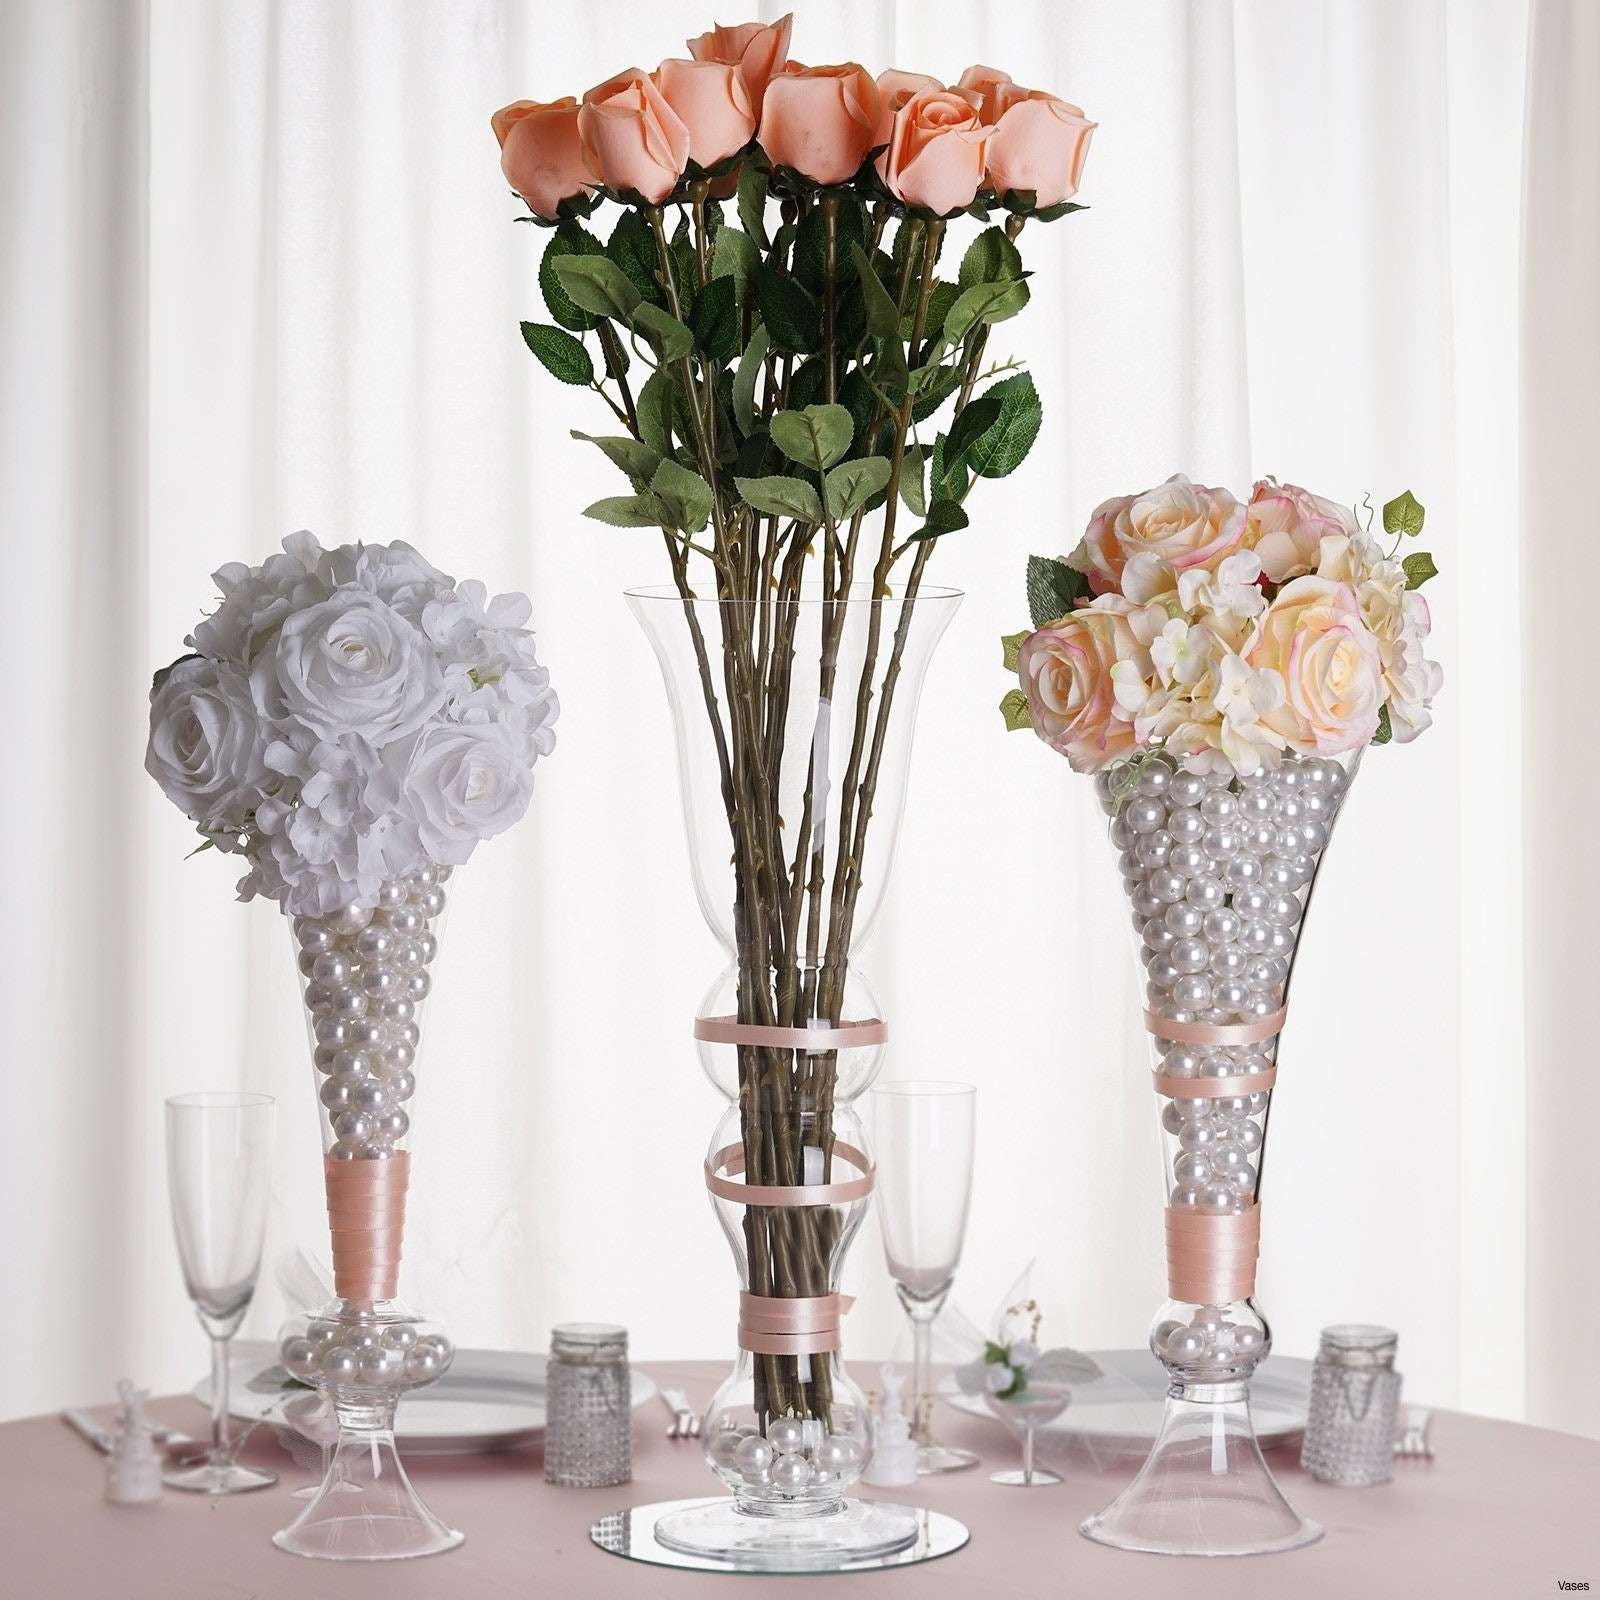 225 & 27 Spectacular Simple Glass Vase | Decorative vase Ideas